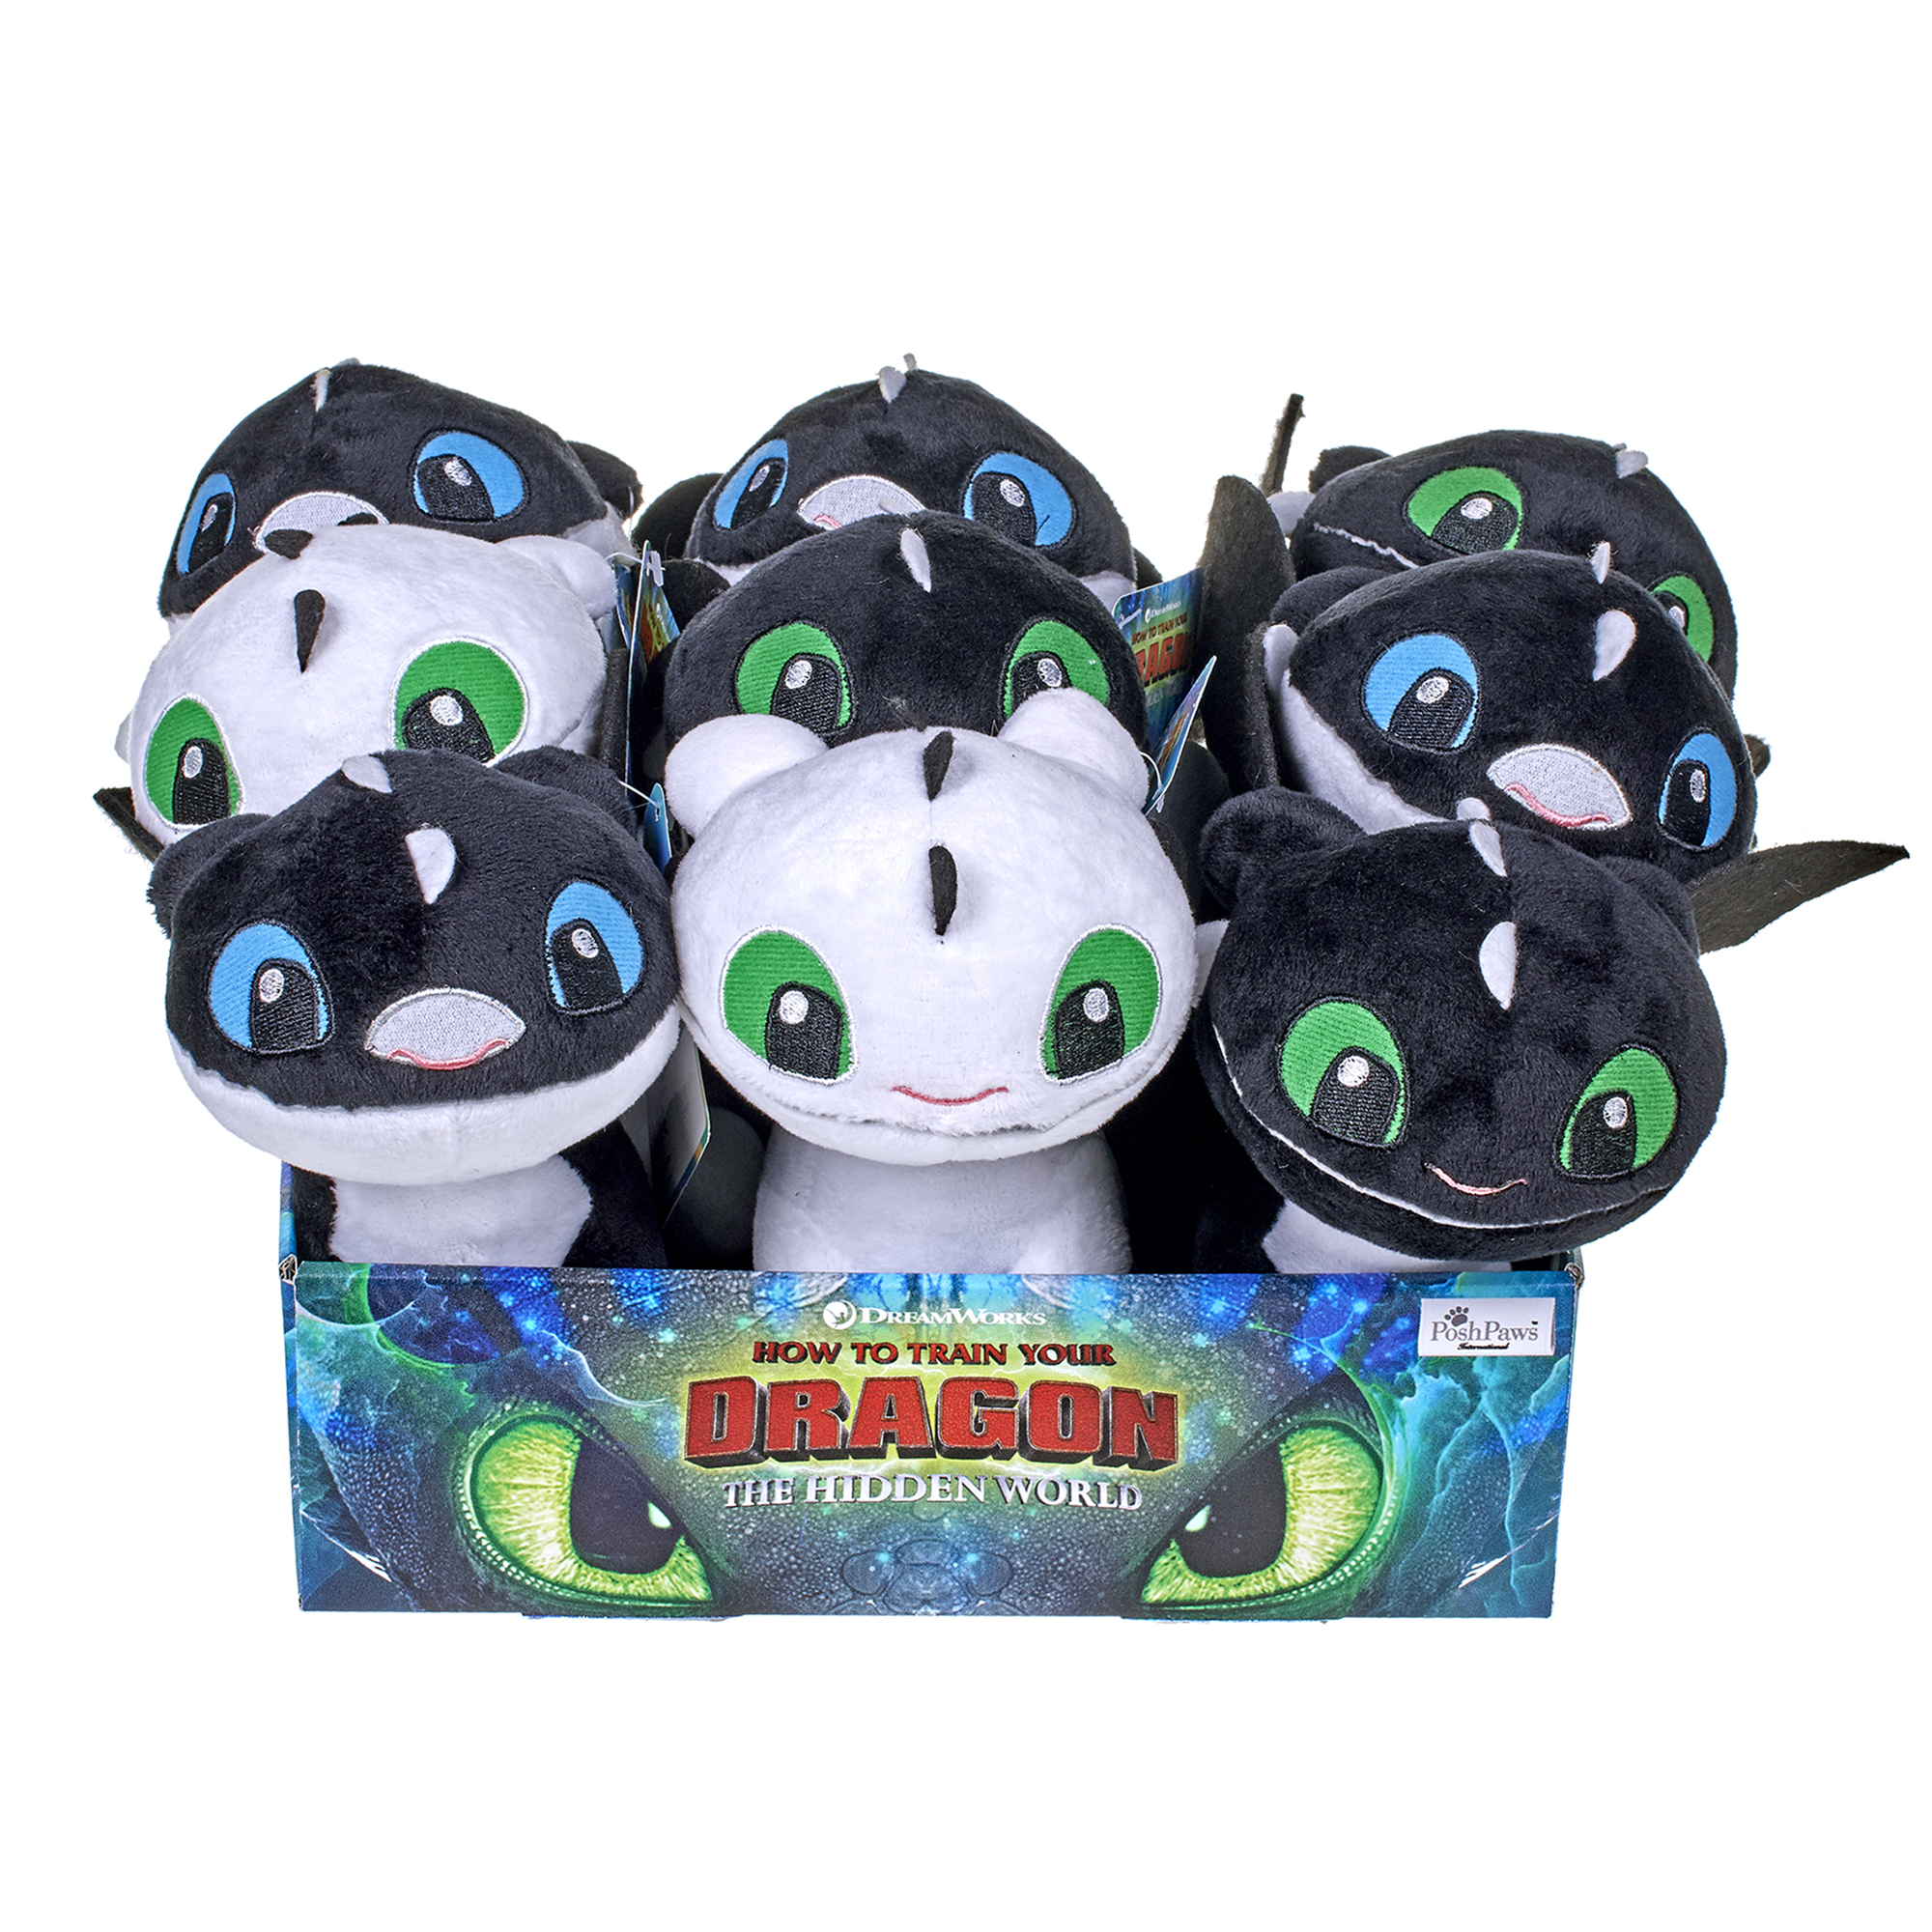 How to Train Your Dragon Night Lights Soft Toys Assortment